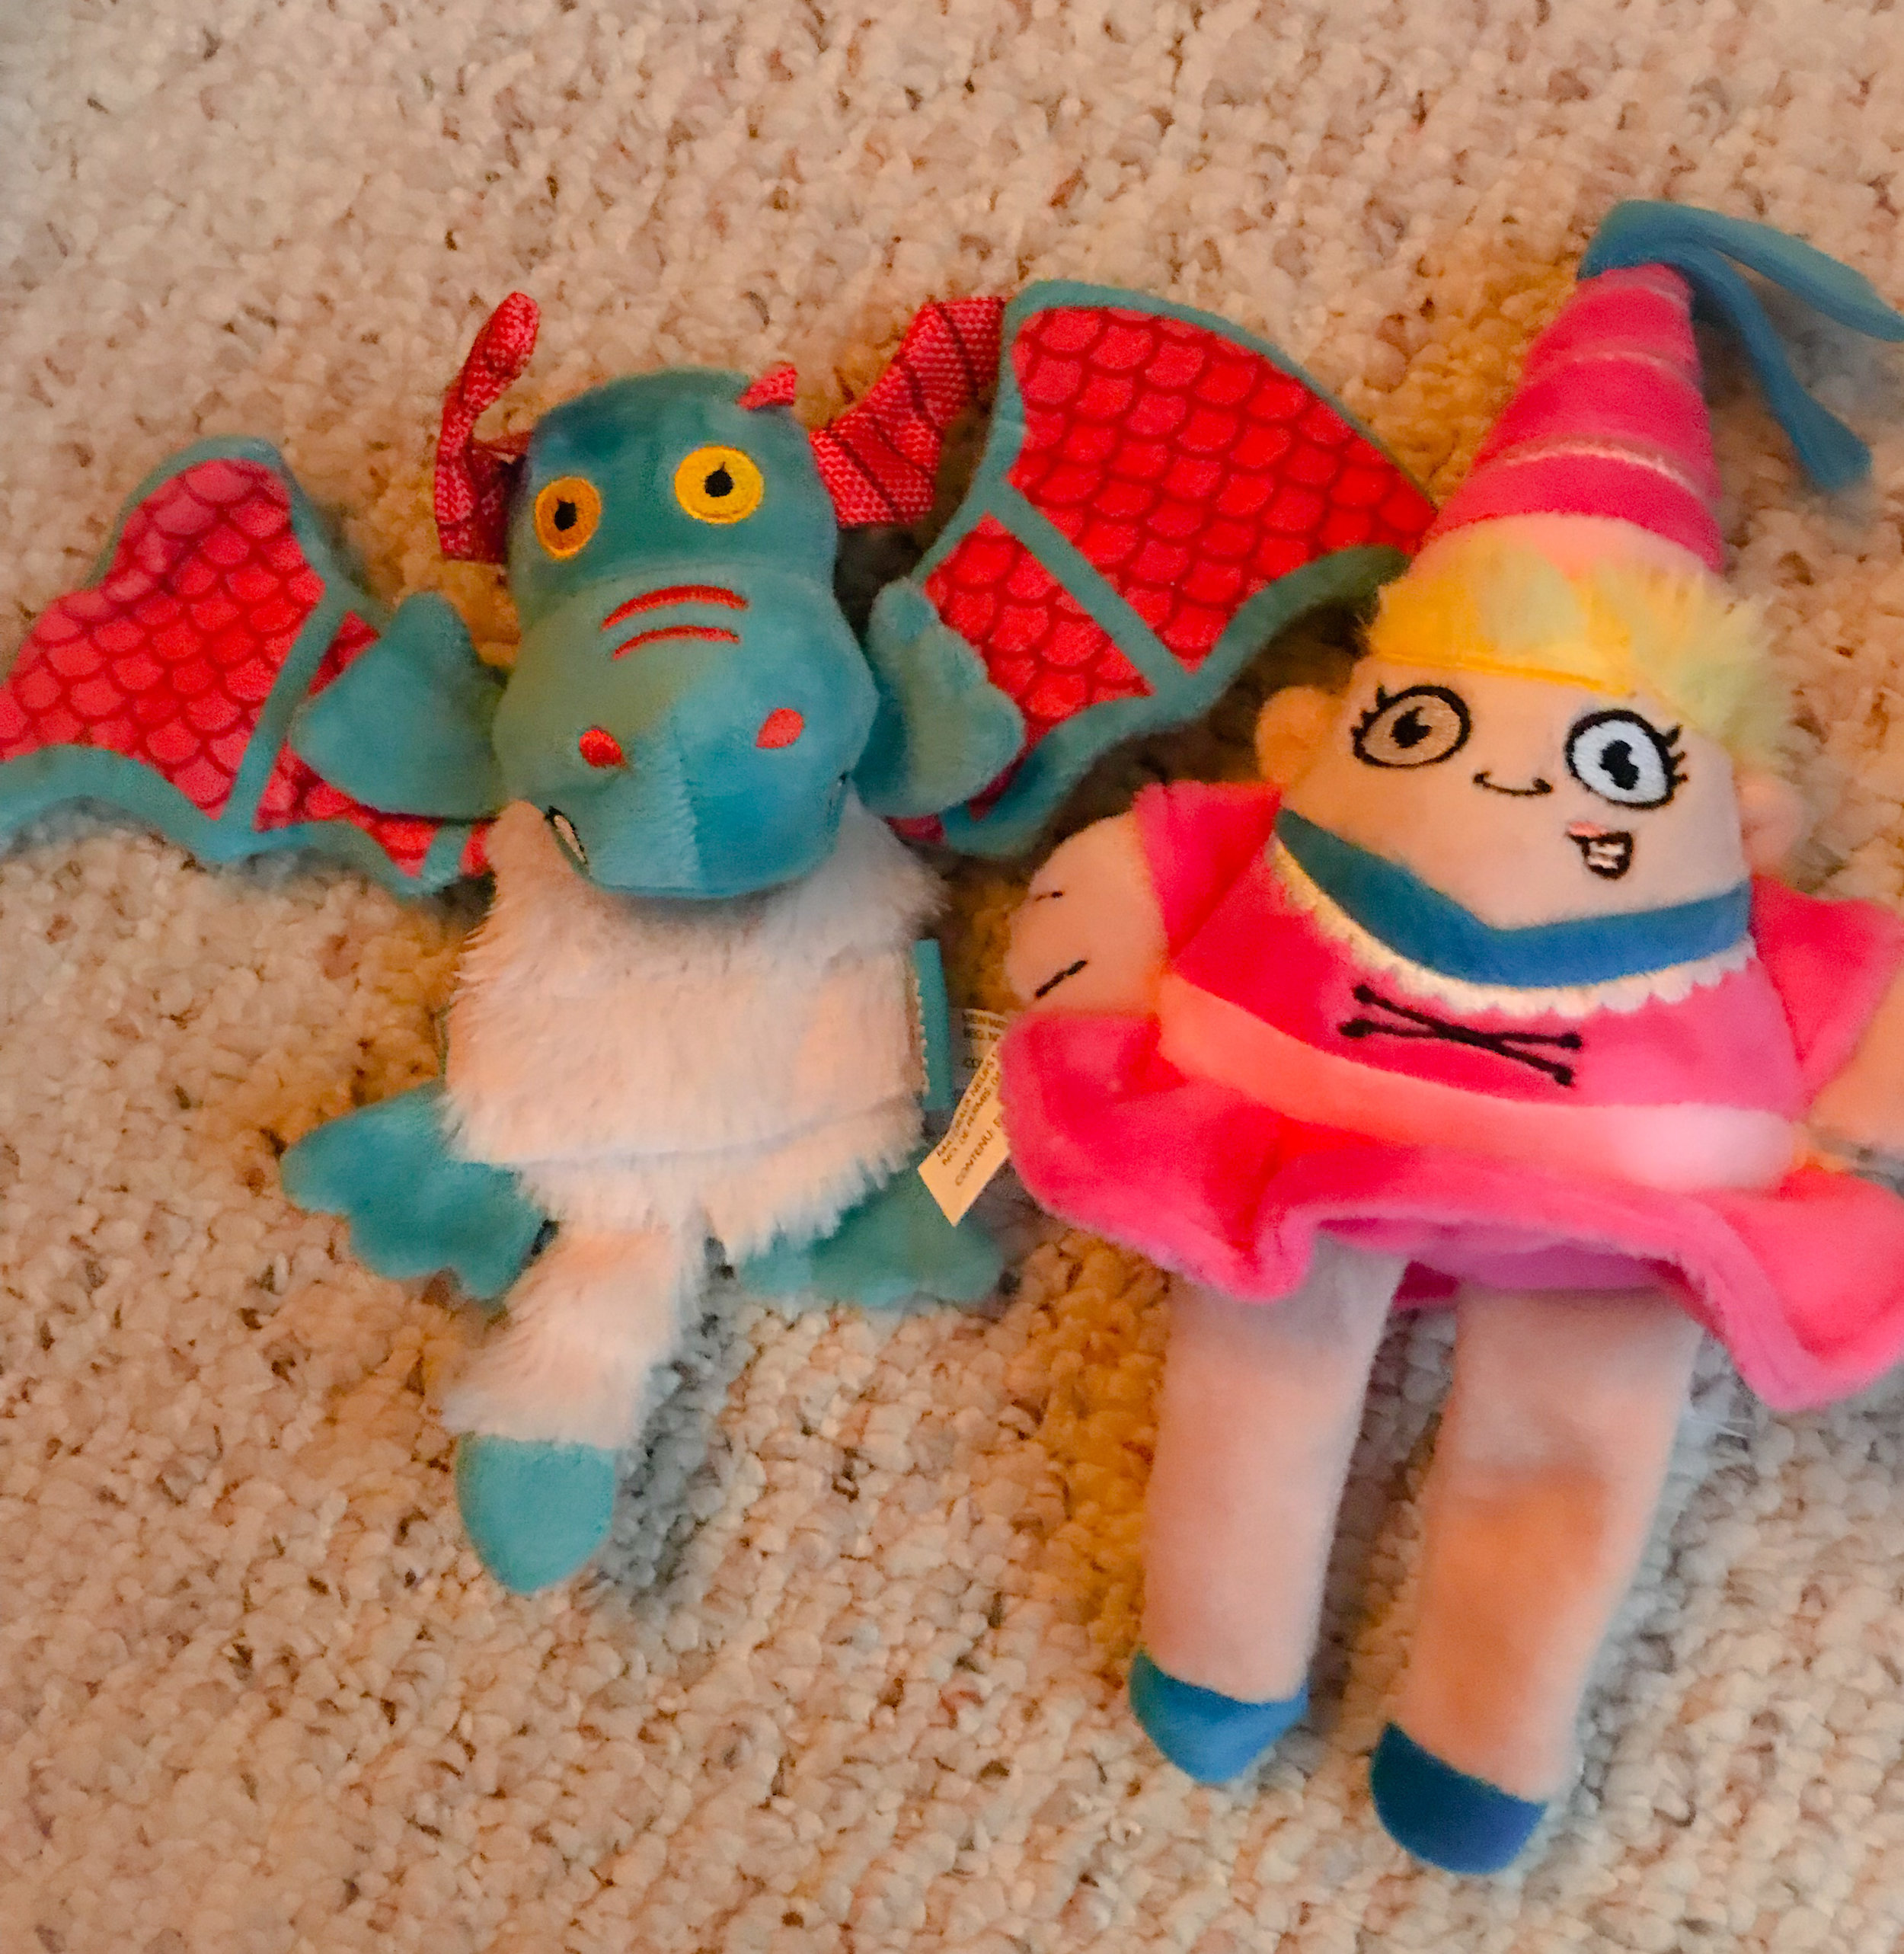 Fairy Land Themed toys. A dragon stuffed with crinkly paper and a squeaker, as well as a princess that makes a funny squeaking sound.